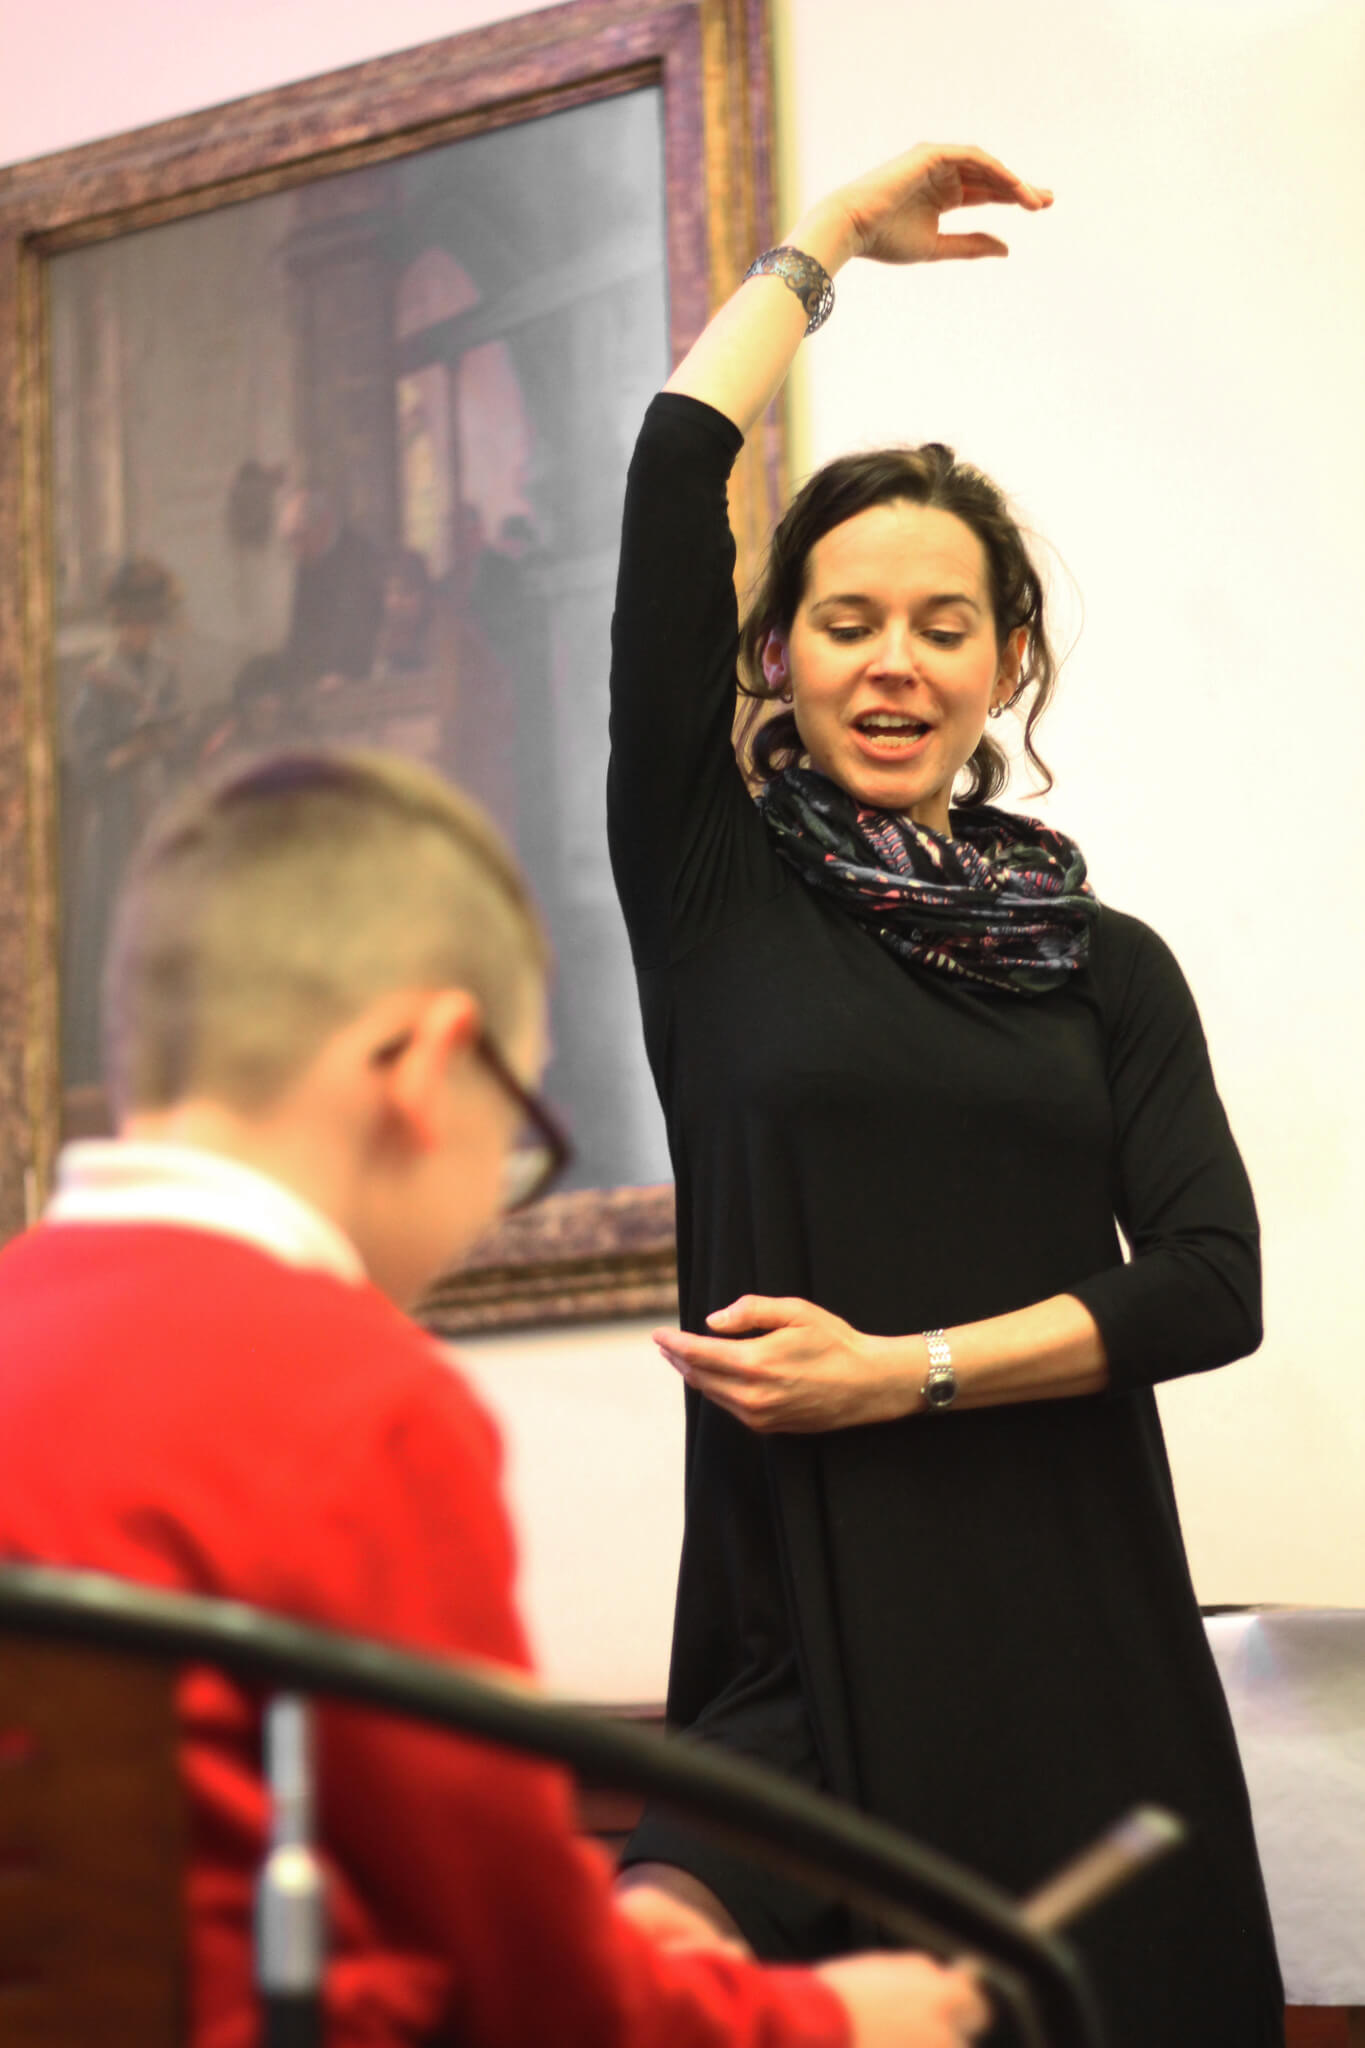 Northern Ballet instructor at an Artsmark Celebration Event